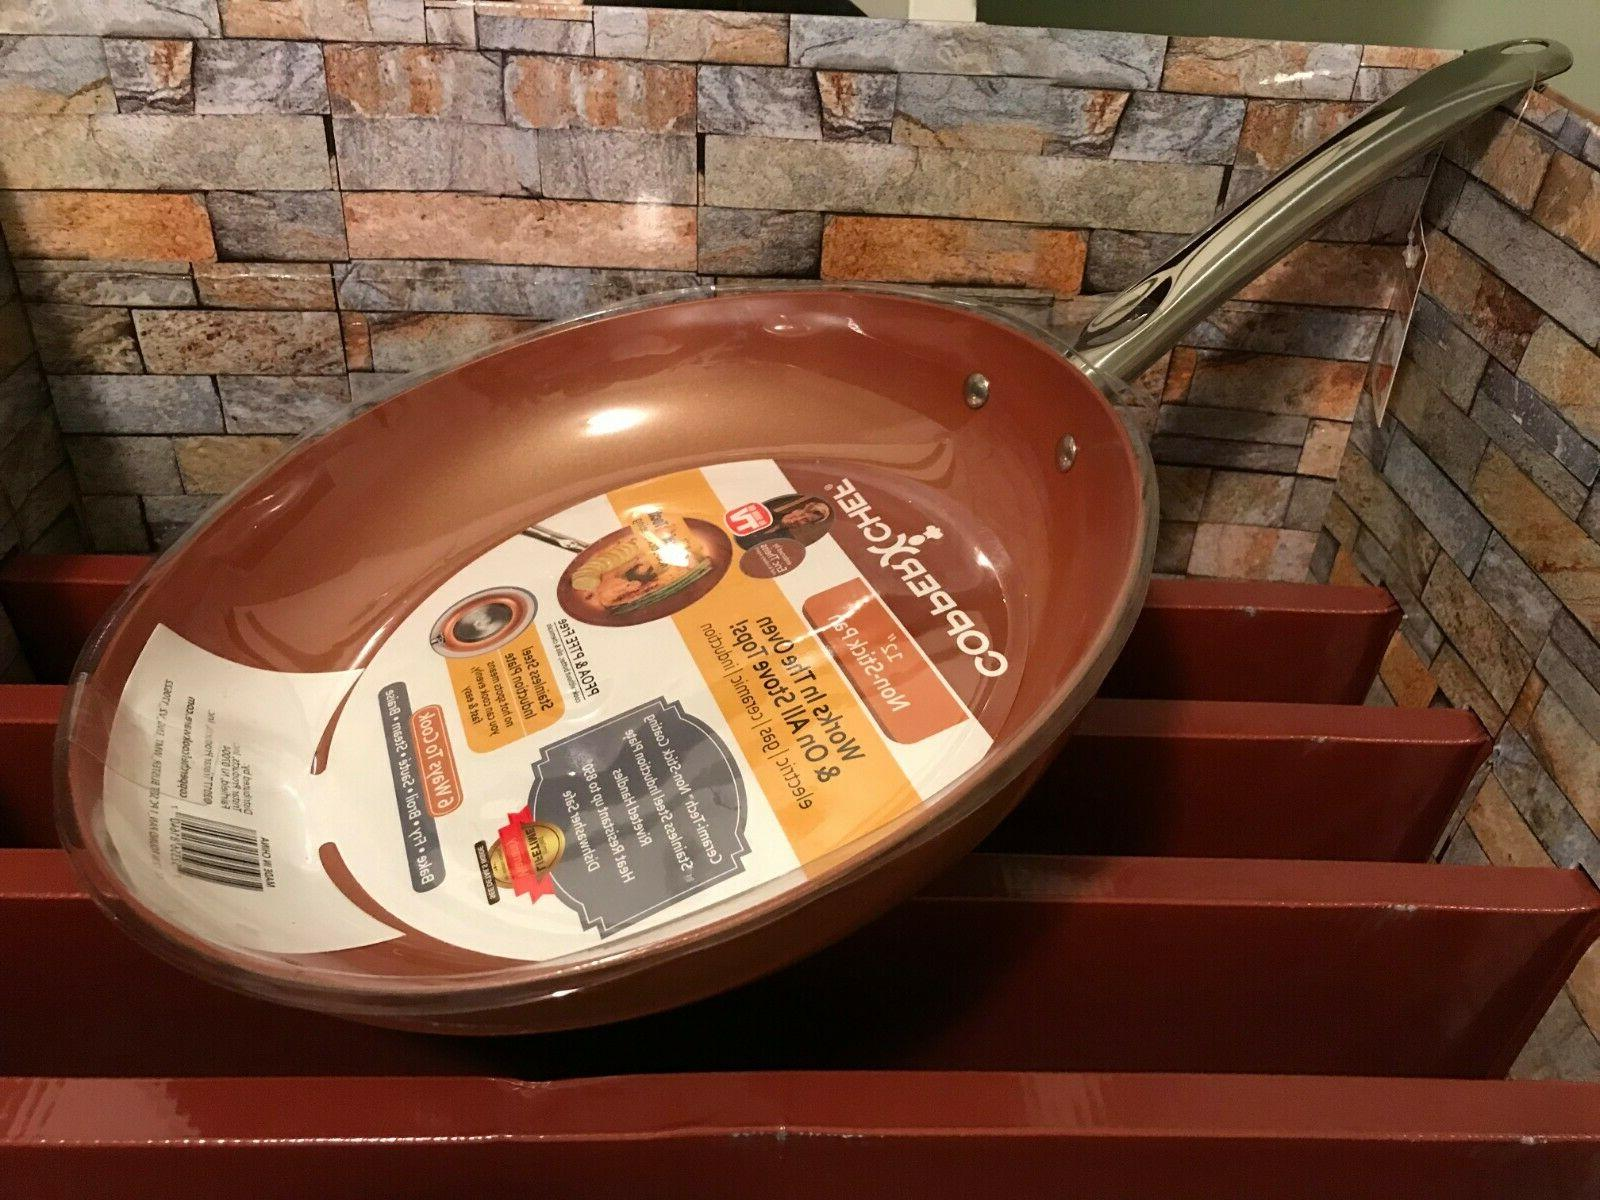 copper chef 12 inch nonstick fry pan